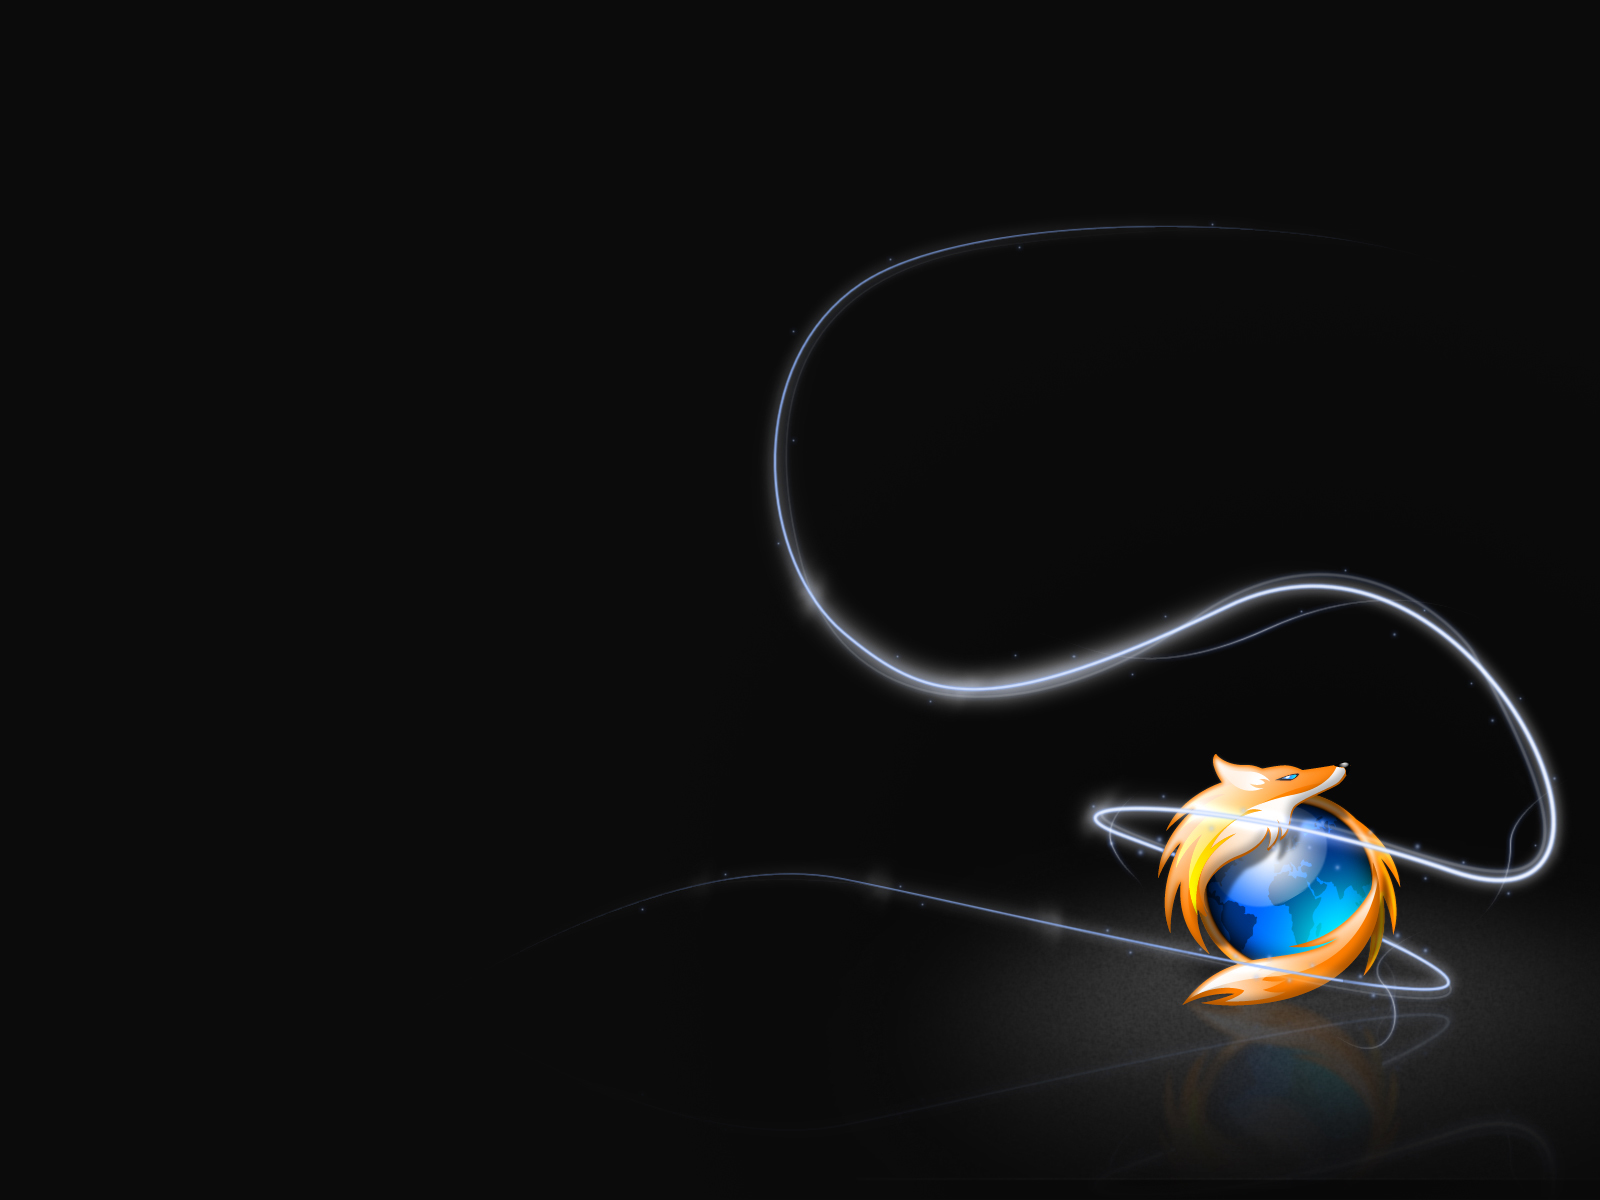 13564 download wallpaper Brands, Logos, Fox screensavers and pictures for free